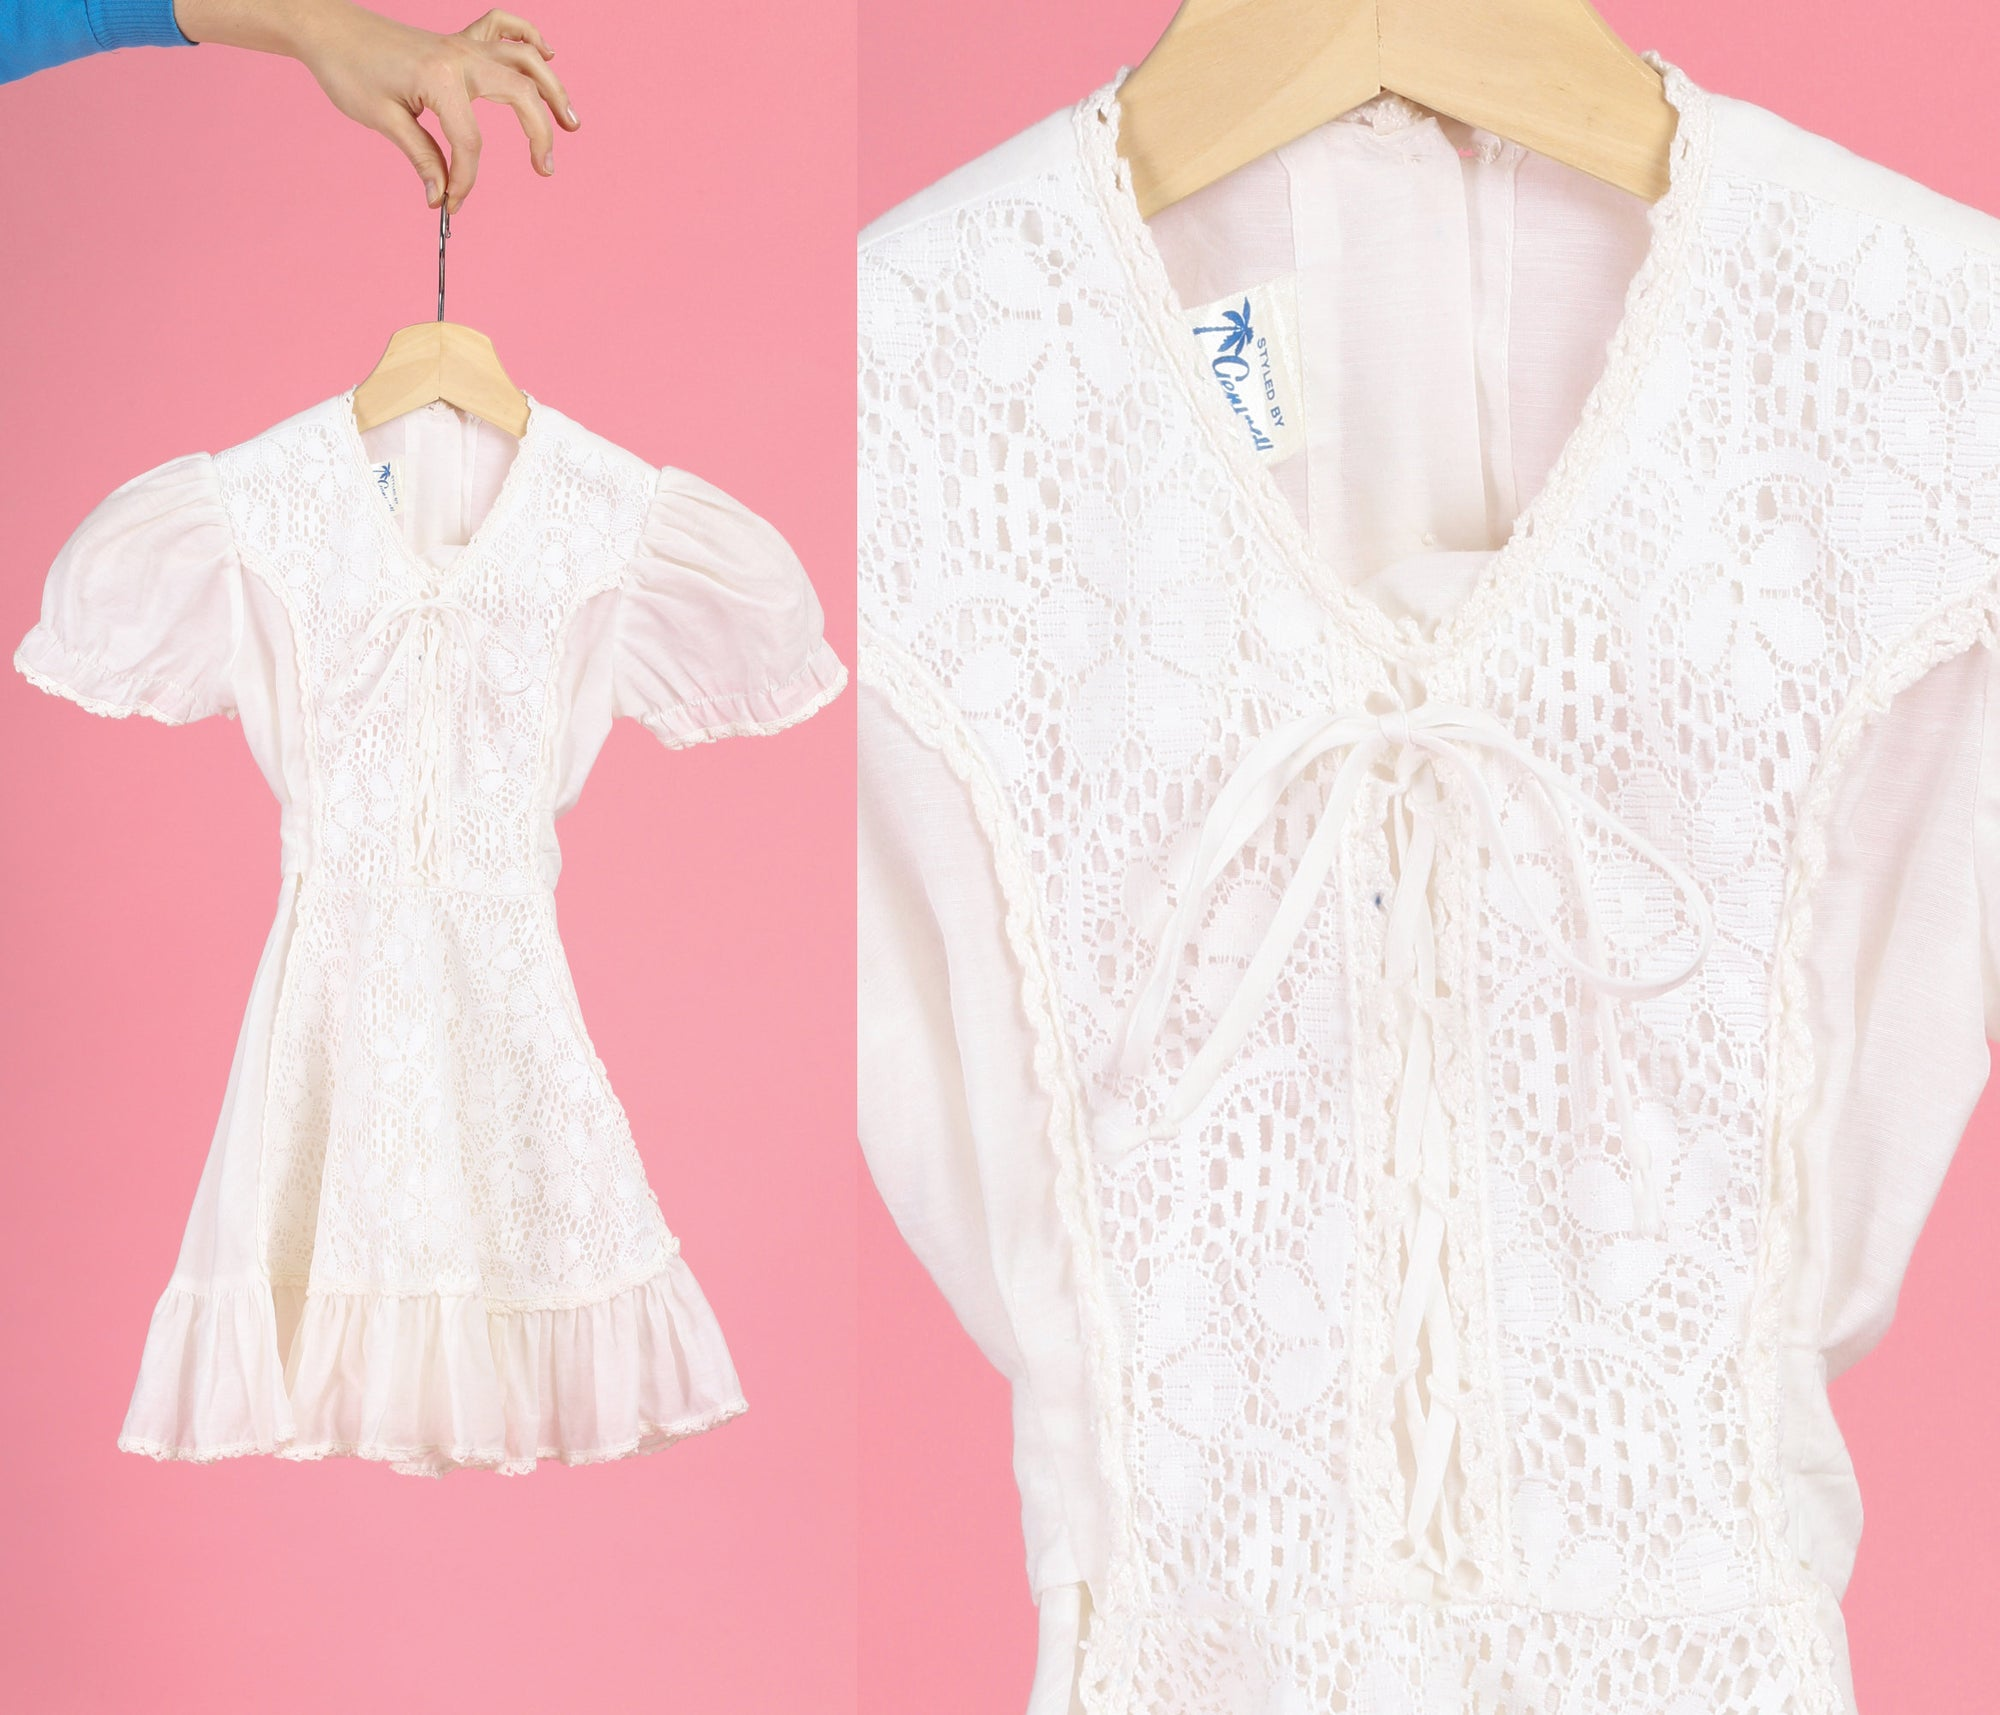 70s Boho White Crochet Lace Up Girl's Dress - Size 5